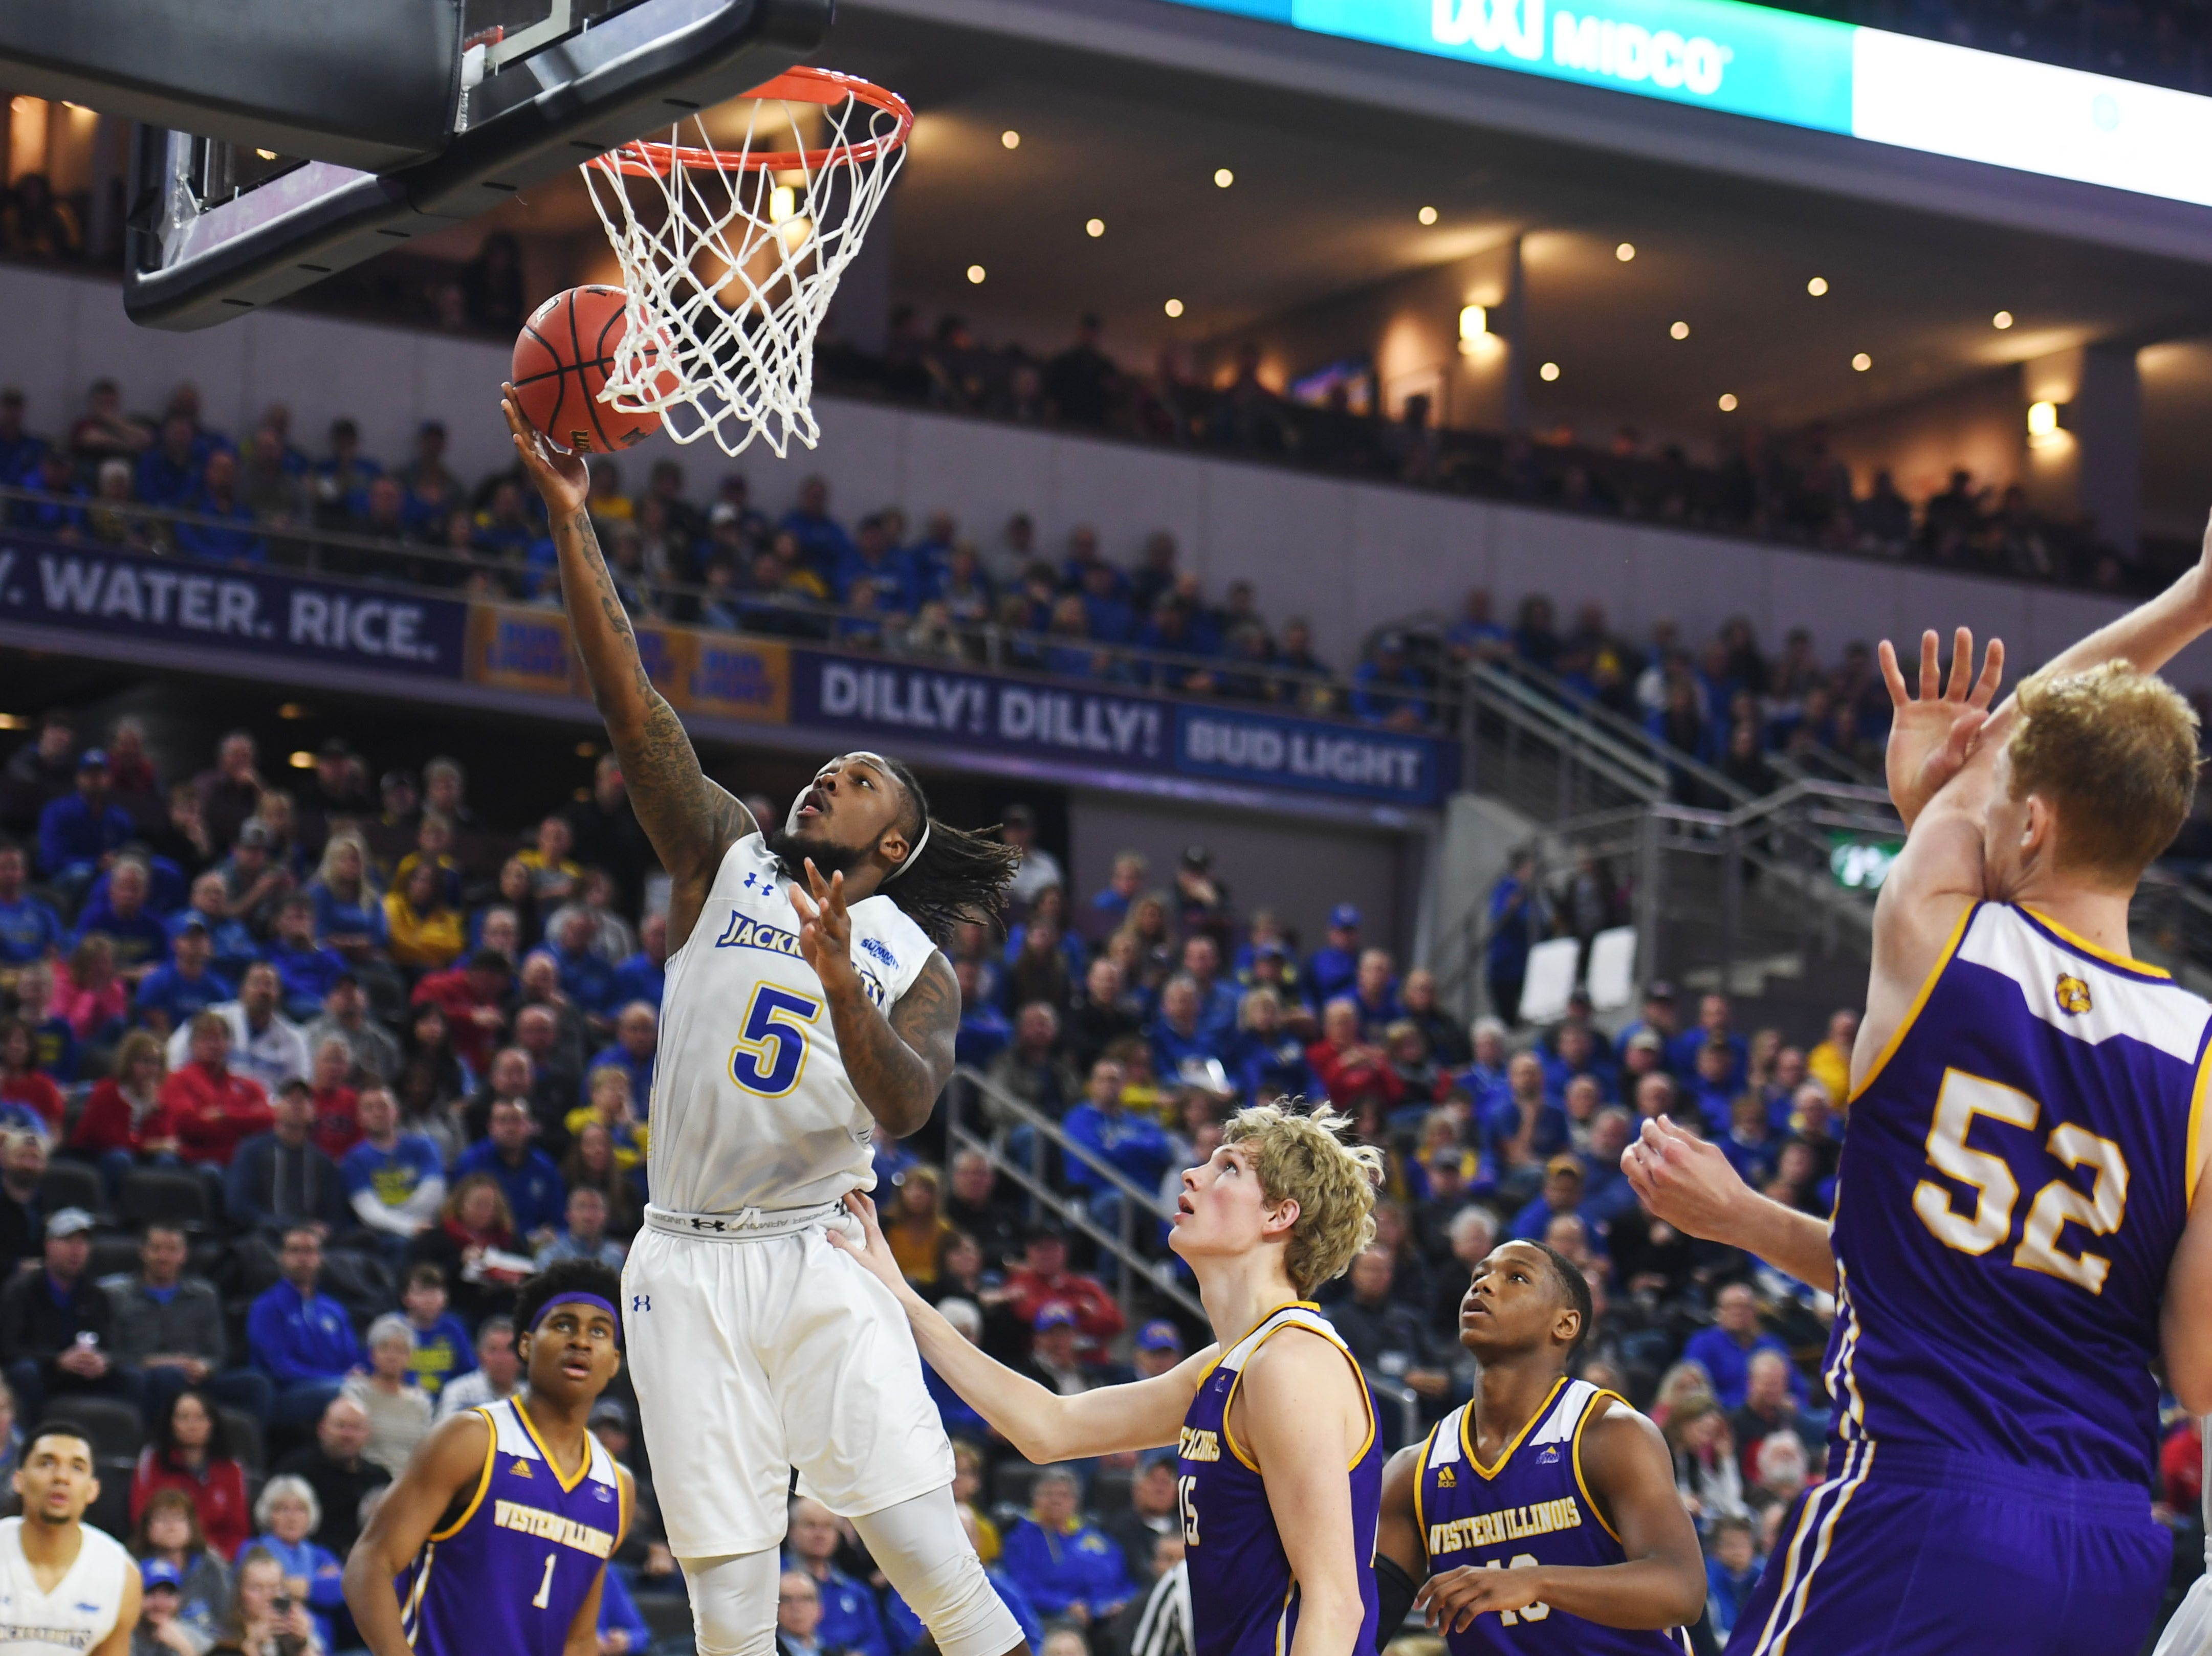 SDSU's David Jenkins attempts to score against Western Illinois Saturday, March 9, in the Summit League tournament at the Denny Sanford Premier Center in Sioux Falls.